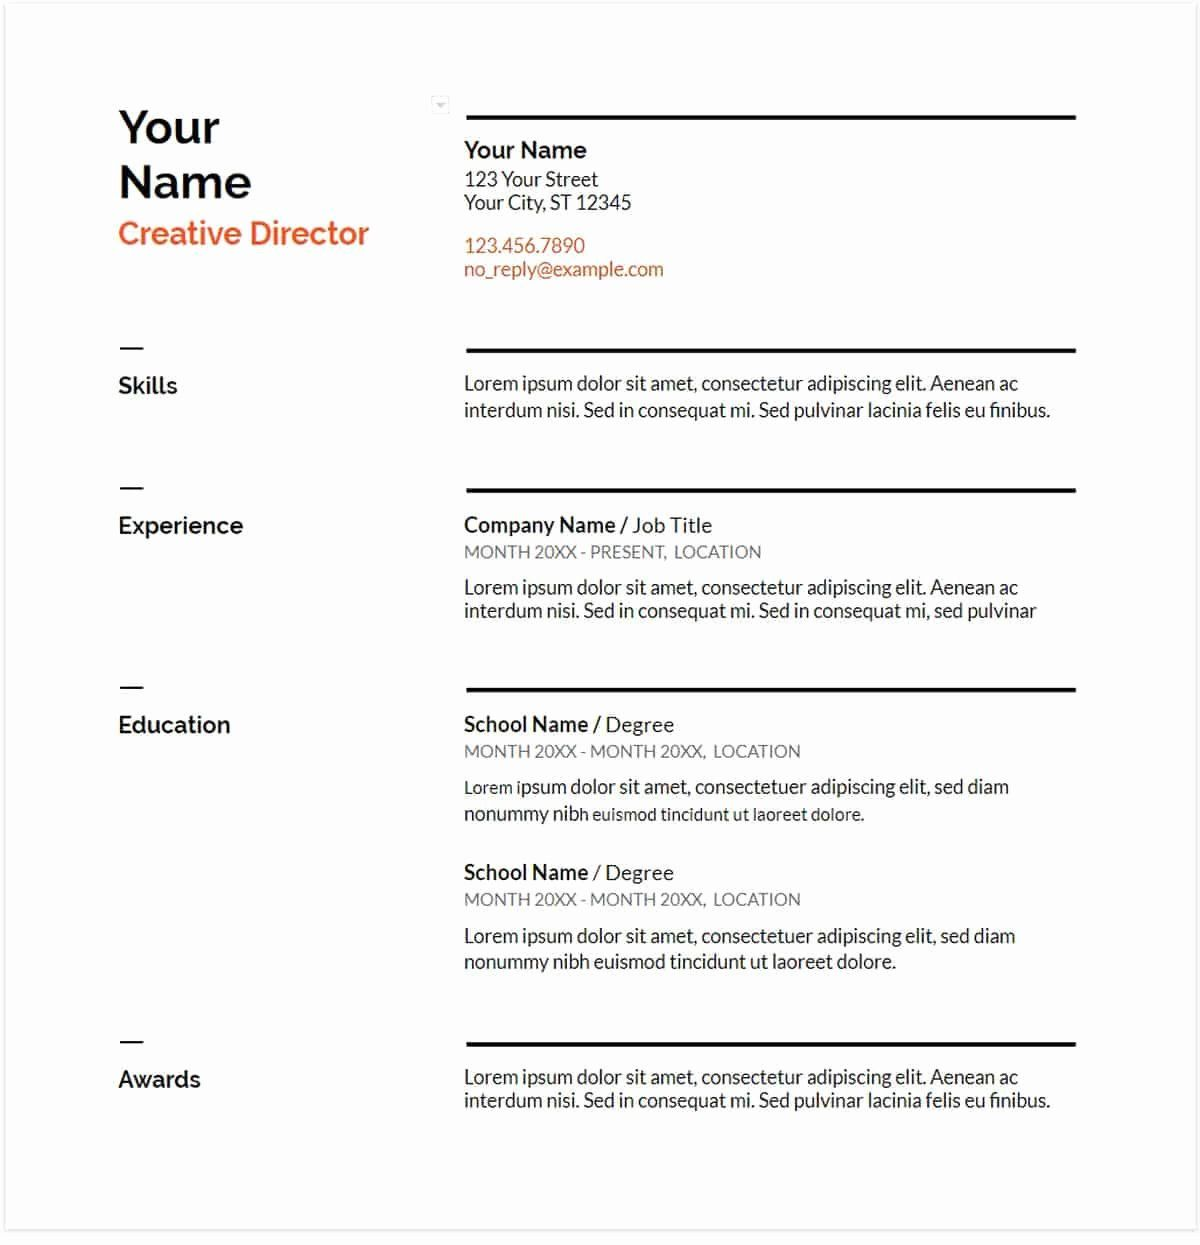 40 Skills Based Resume Template Free in 2020 (With images